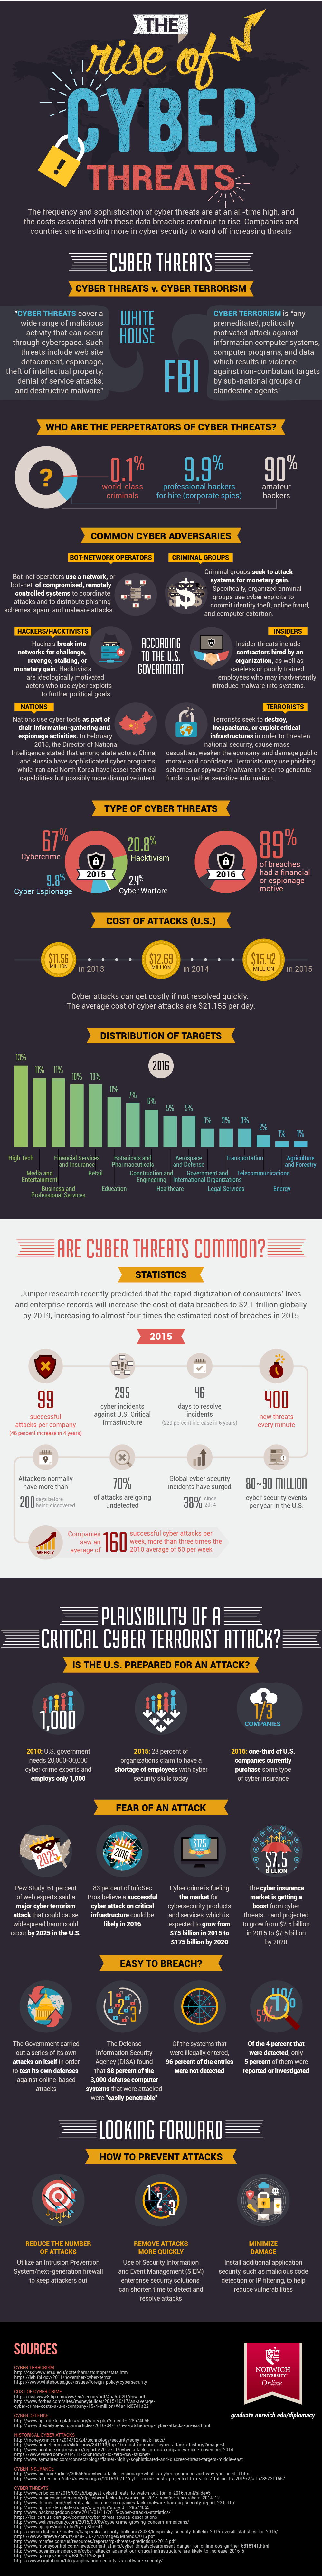 the-rise-of-cyber-terrorism